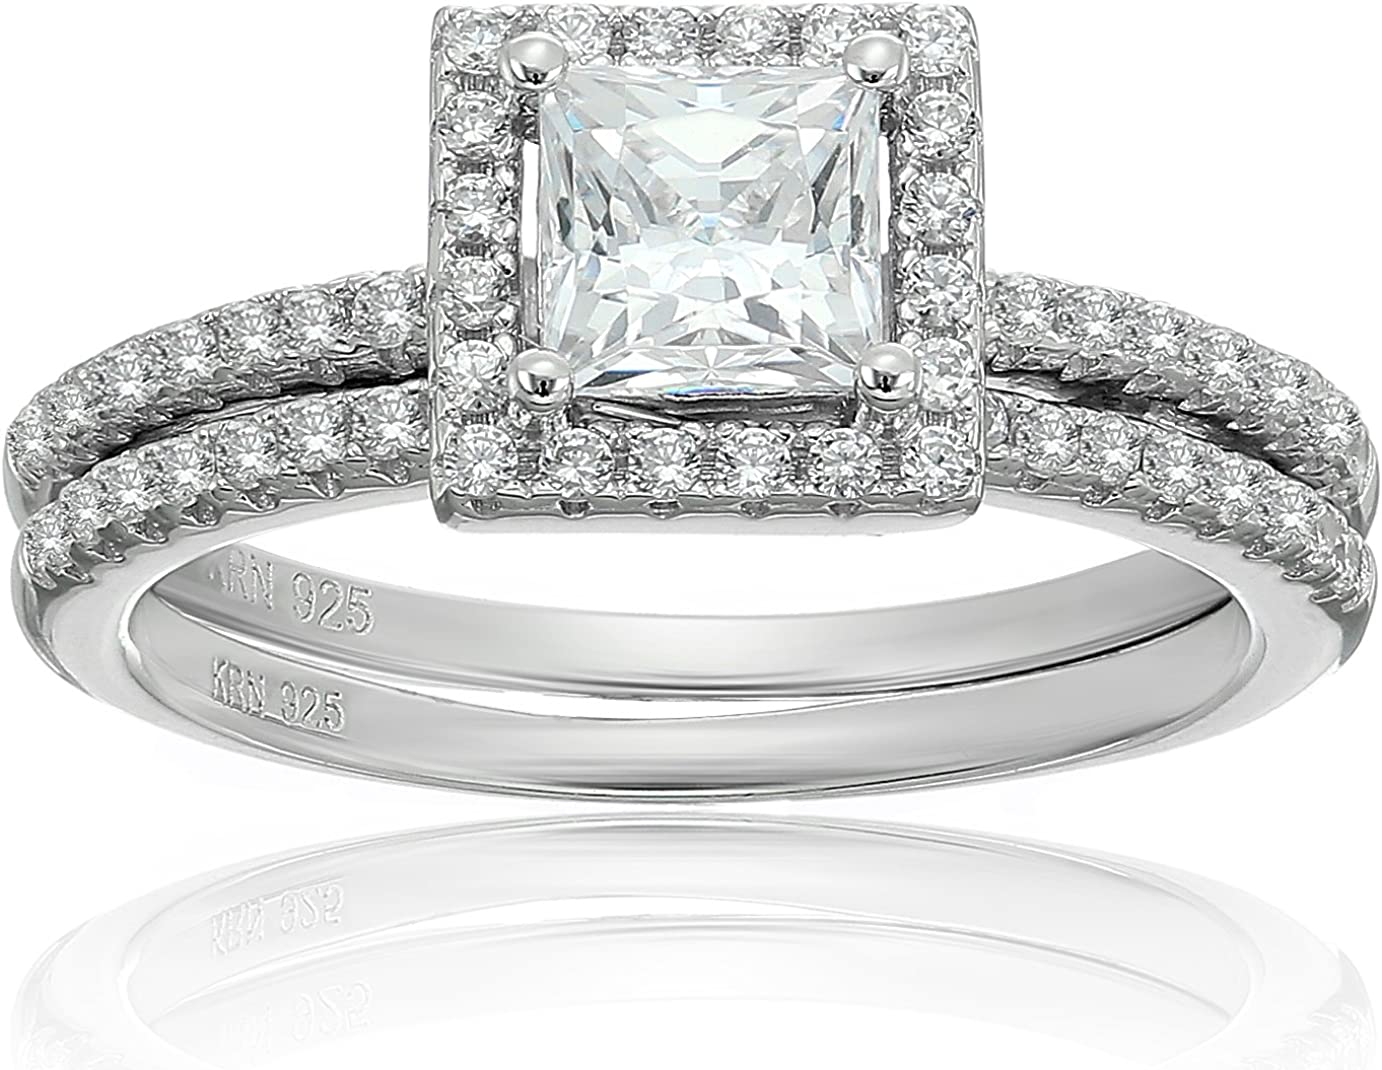 Solitaire Squared Frame Stainless Steel Ladies Engagement Wedding Ring